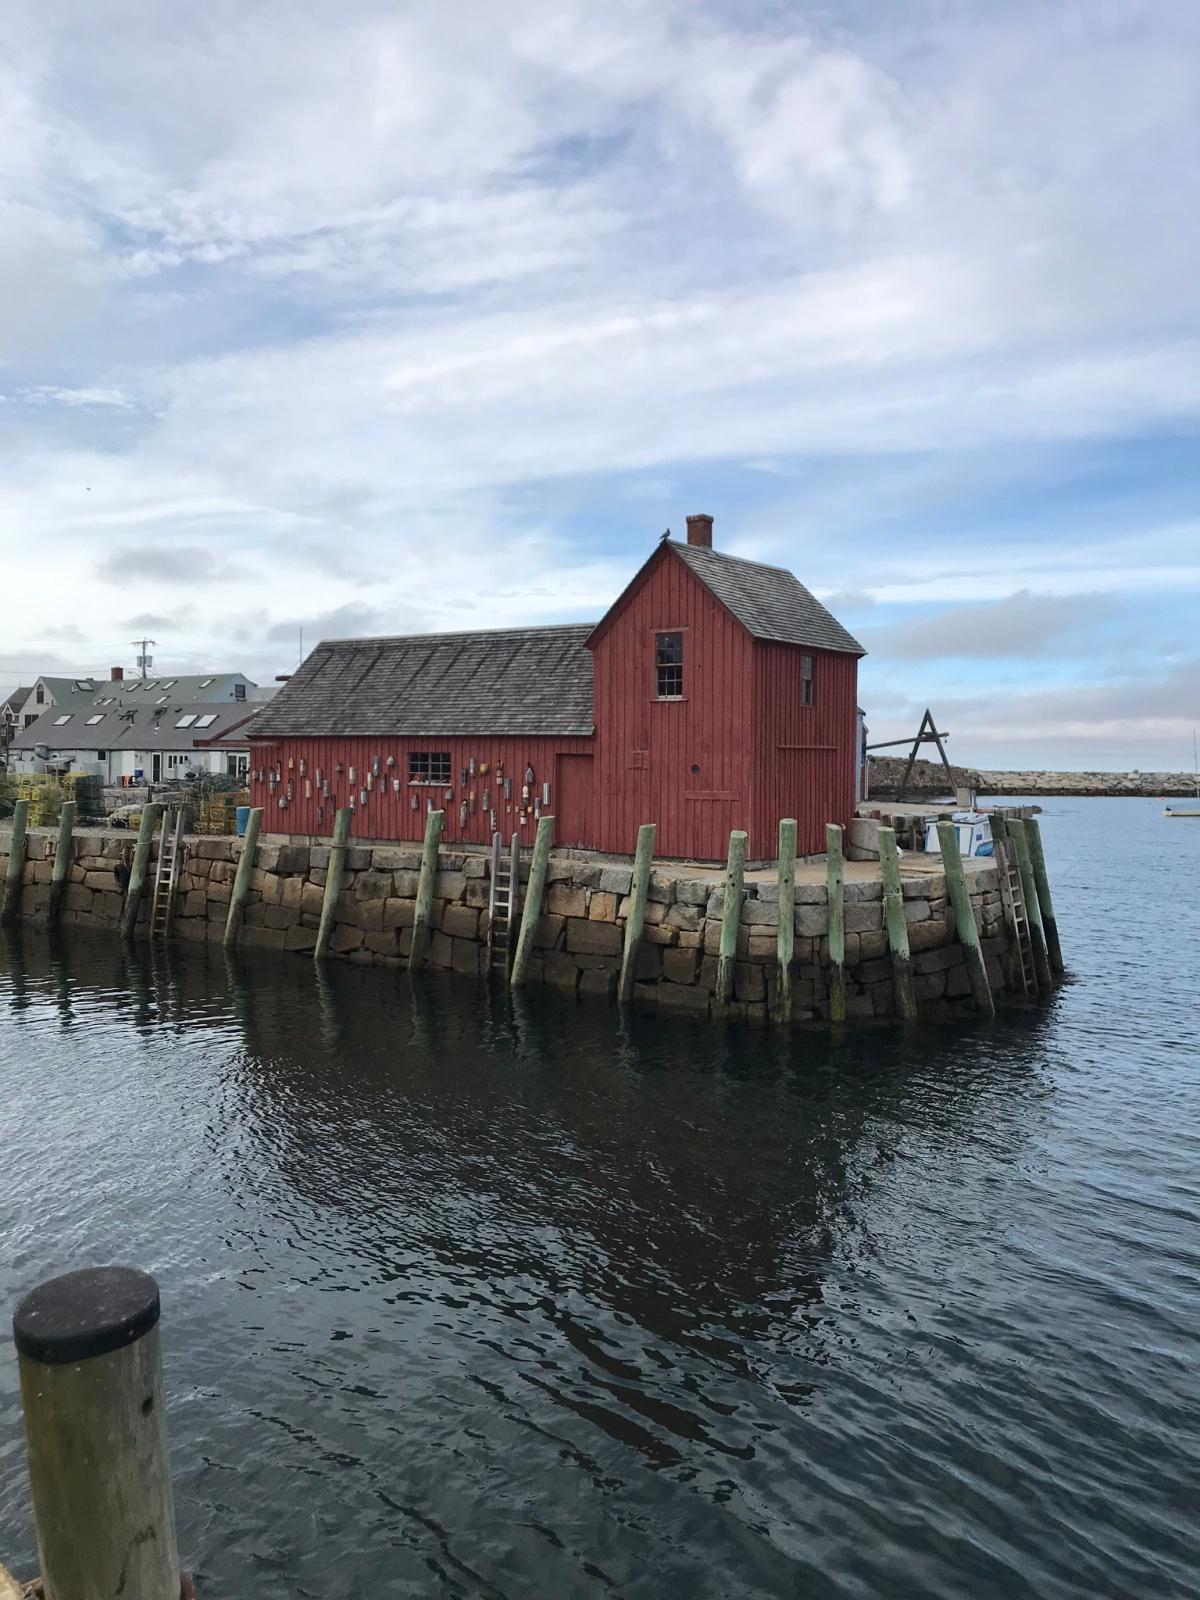 Motif #1, Rockport MA | Travel with Baby